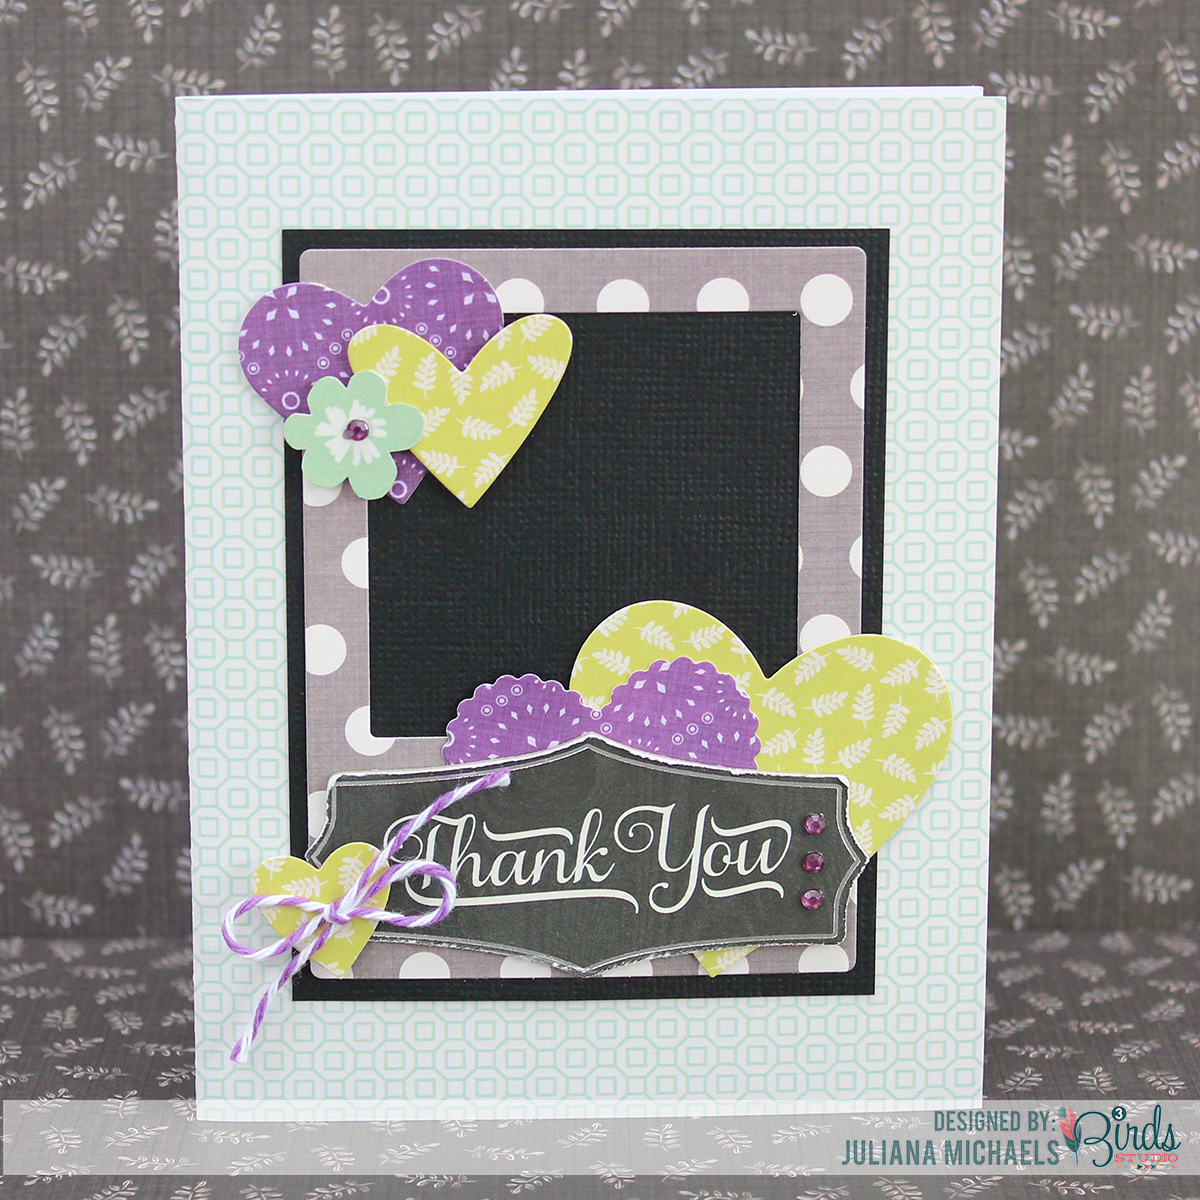 Thank You Card by Juliana Michaels for 3 Birds Studio